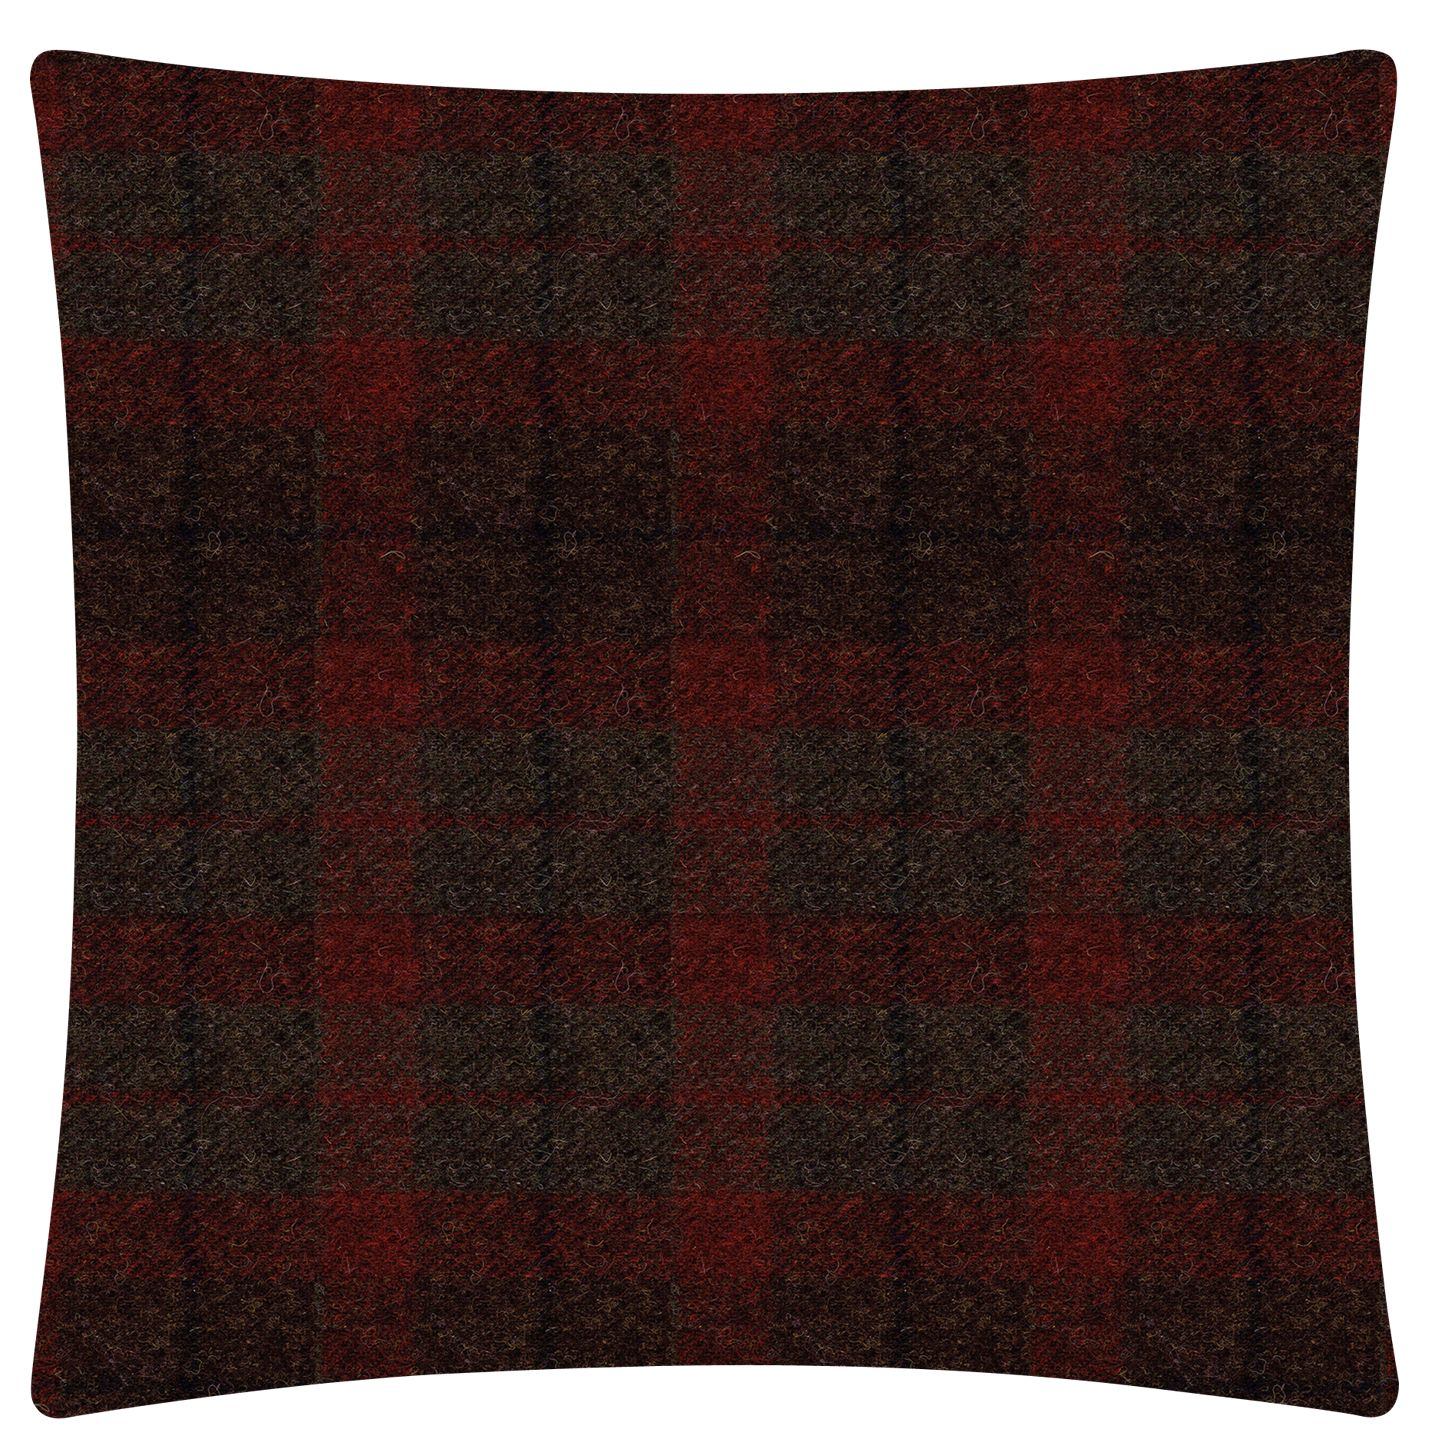 Tetrad Harris Tweed Tetrad Harris Tweed Scatter Cushion